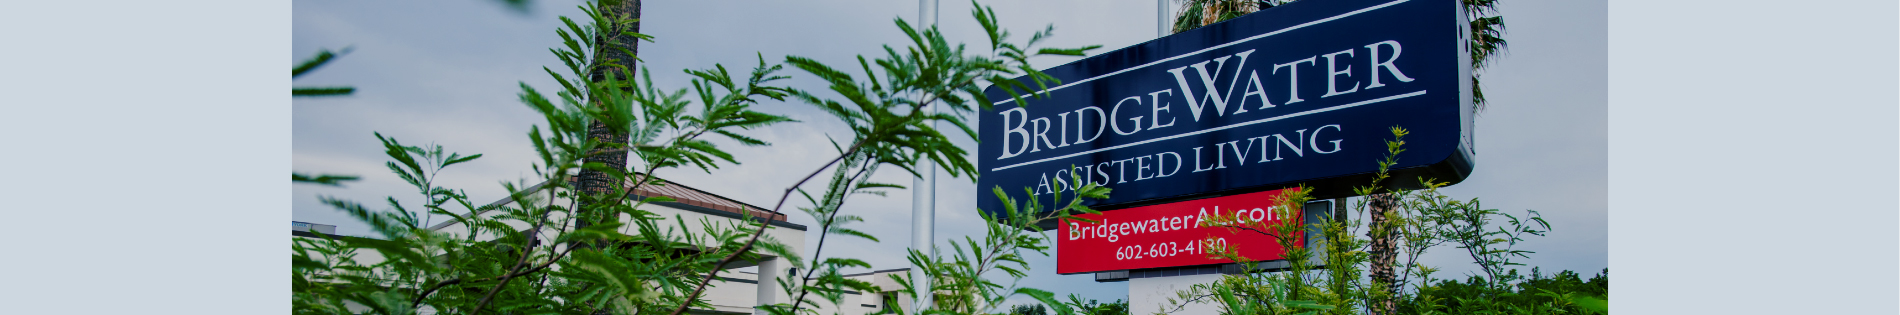 Bridge Water Assisted Living Sign